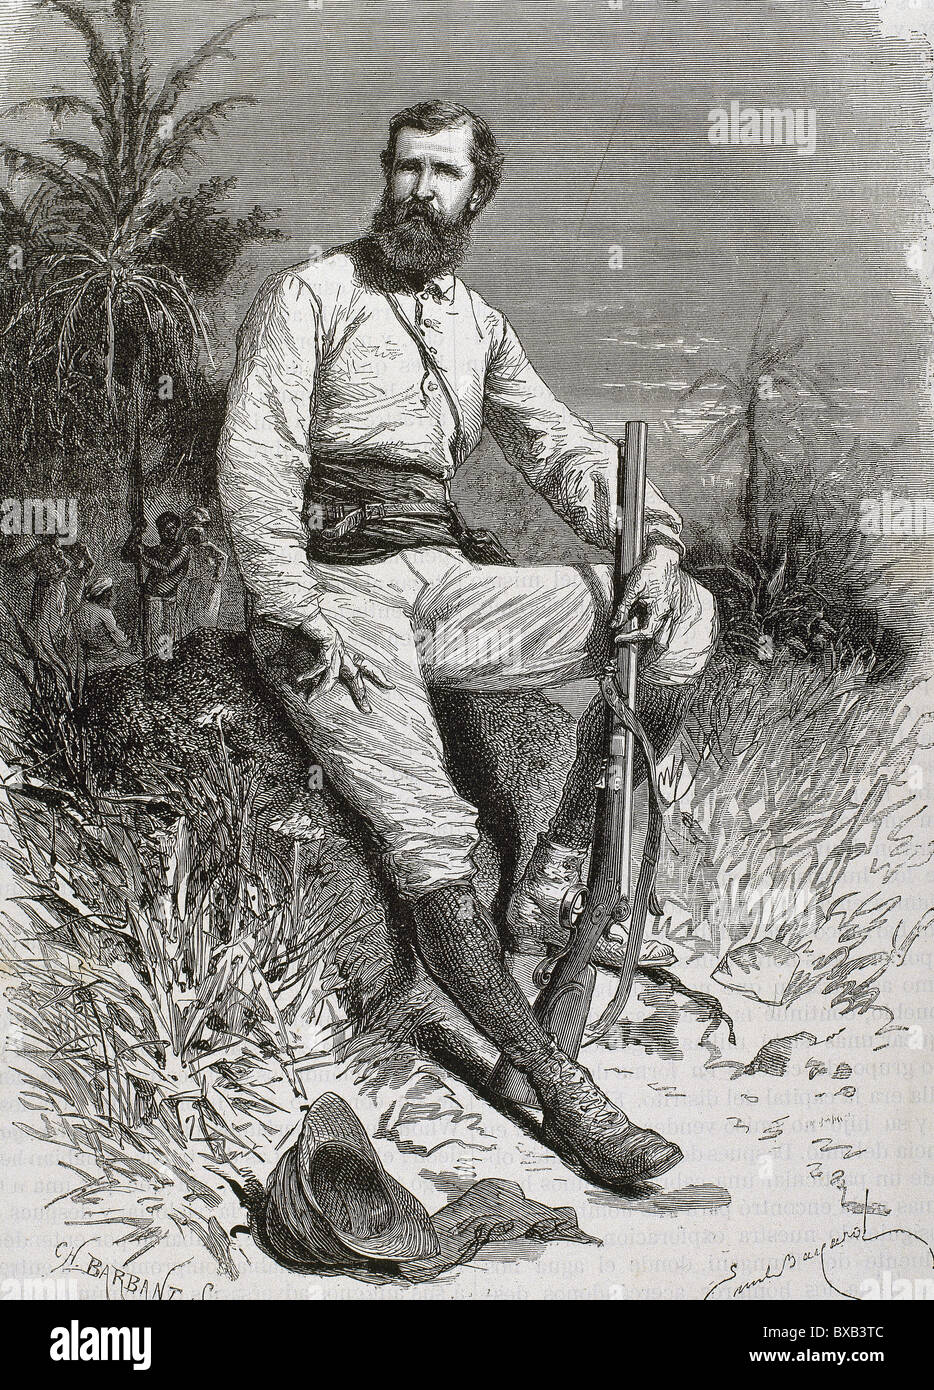 Cameron, Verney Lovett (1844-1894). British traveler and explorer. Engraving by Barbant. - Stock Image